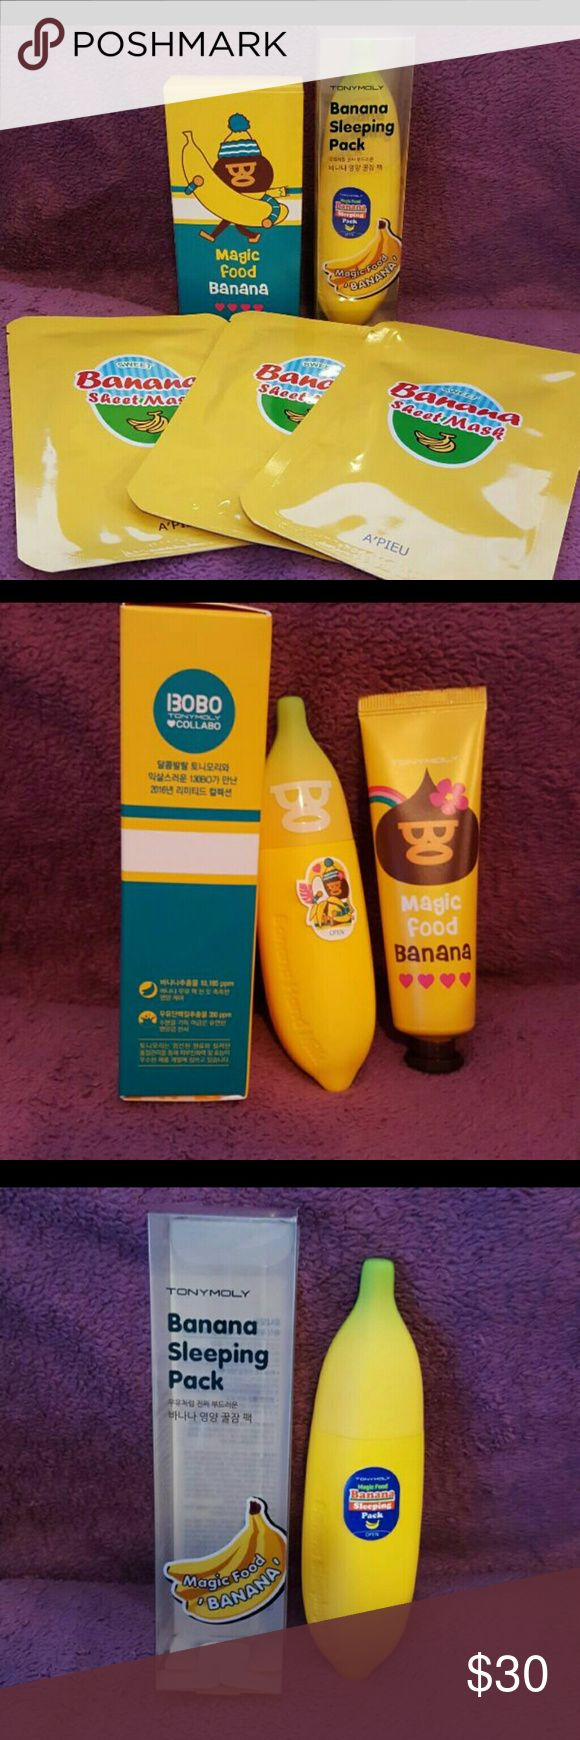 Banana themed Korean skincare lot! ??Banana is known for its moisturizing properties. It's known to make your skin feel nourished and radiant. Listing is for:   ?x1 Tonymoly Banana Sleeping pack 2.87 Oz mfg date 03/16 ?x1 Tonymoly x Bobo collaboration Magic Food   Banana Hand Milk 2016 Special Gift set 1.52 Oz & 1.0 oz mfg date 01/16 *RARE item!* ?x3 A'pieu sweet banana sheet mask. exp 3/19  With Korean skincare products it is common to list manufactured dates. Generally products are good…